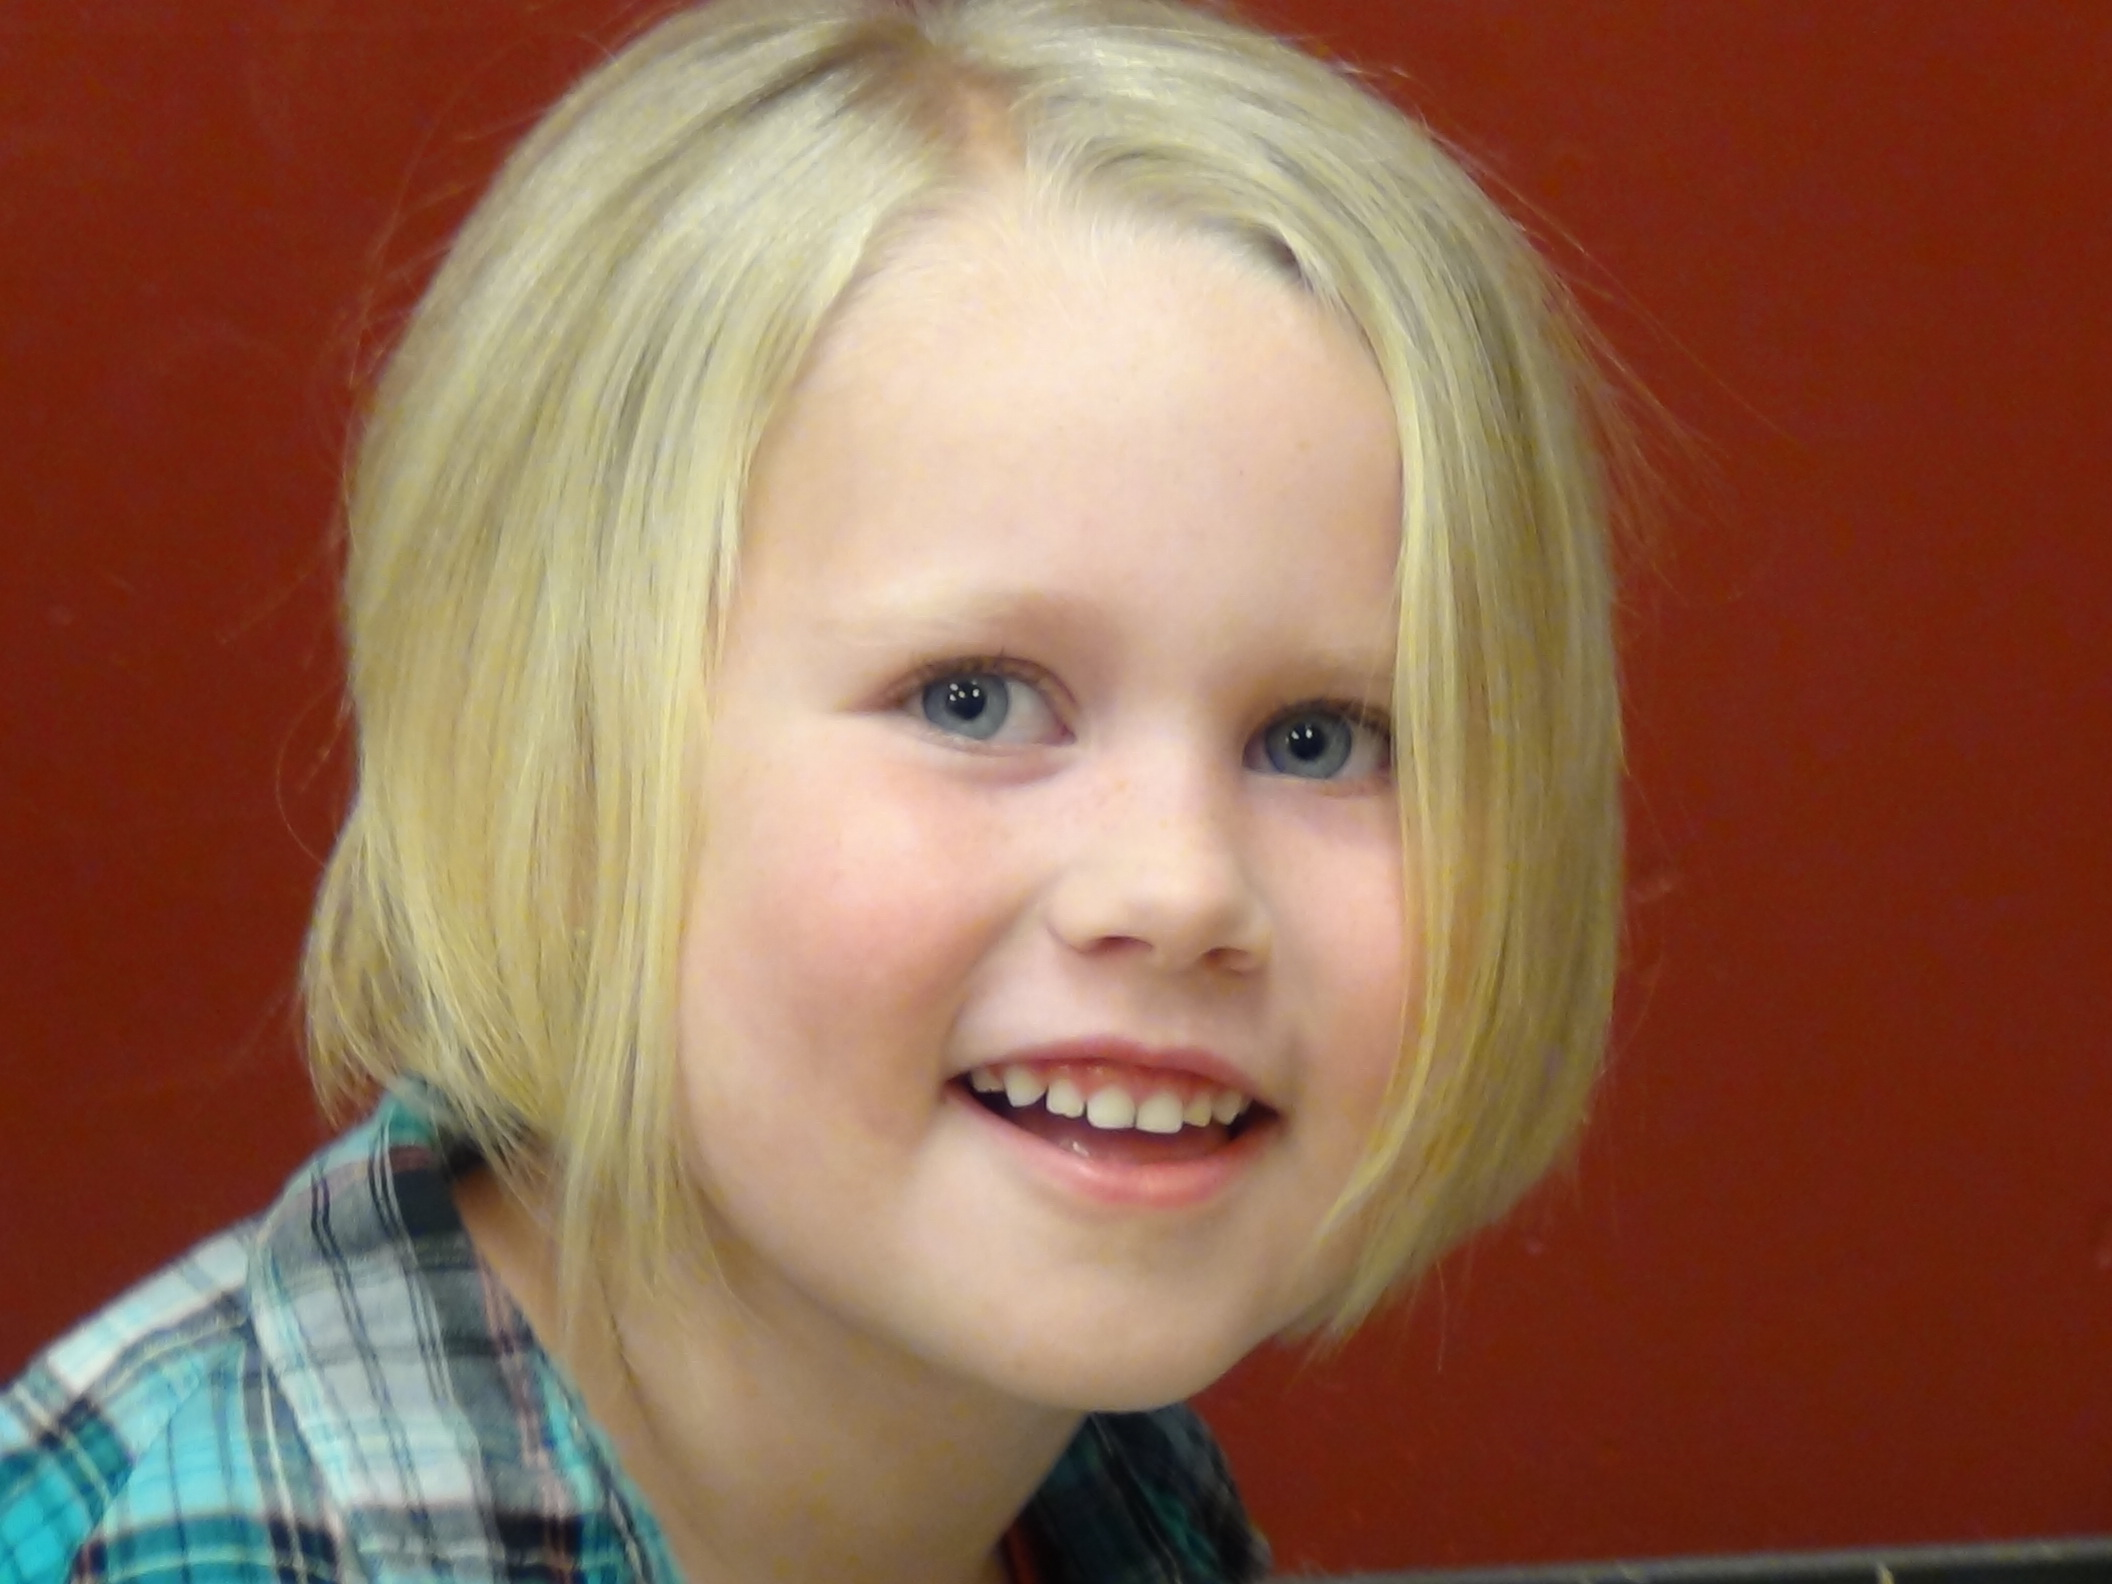 Bob Haircuts For Little Girls